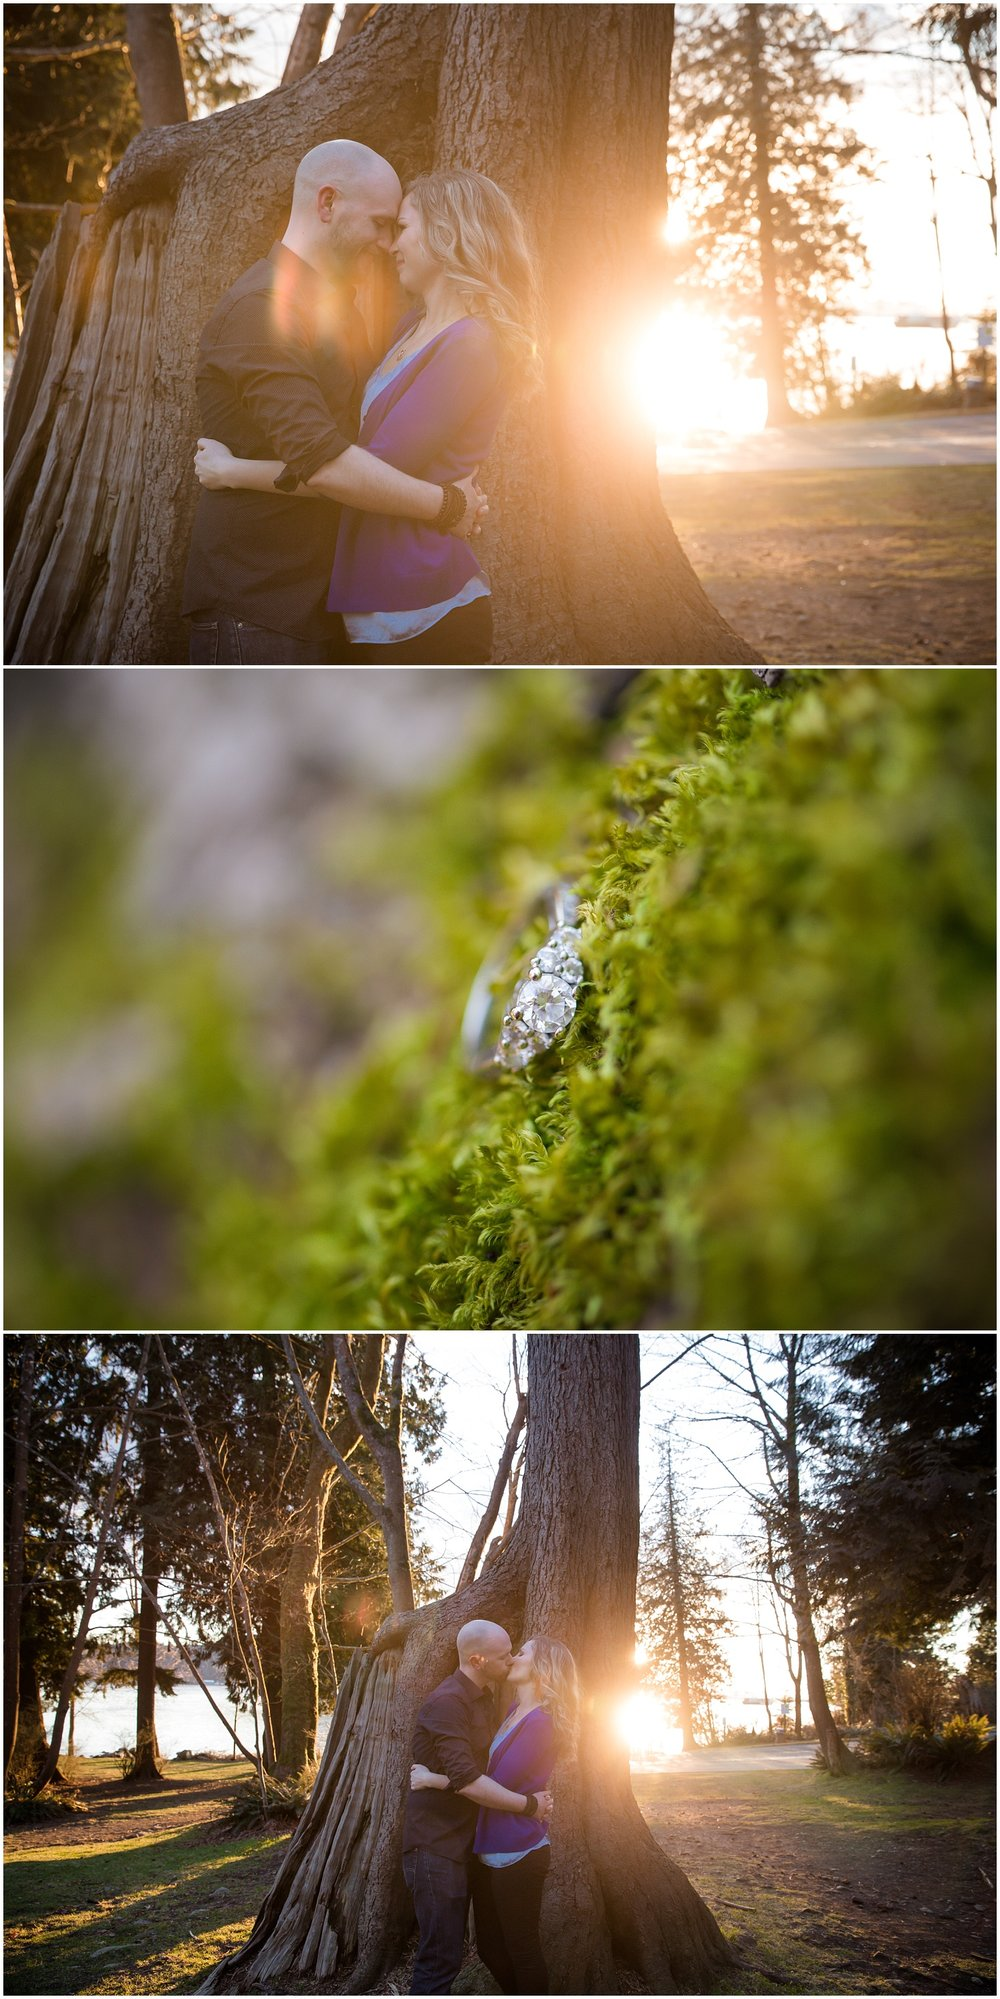 Amazing Day Photography - Langely Wedding Photographer - Snow Engagement Session - Mount Seymour Engagement - Winter Engagement Session - North Vancouver Engagement Session  (11).jpg